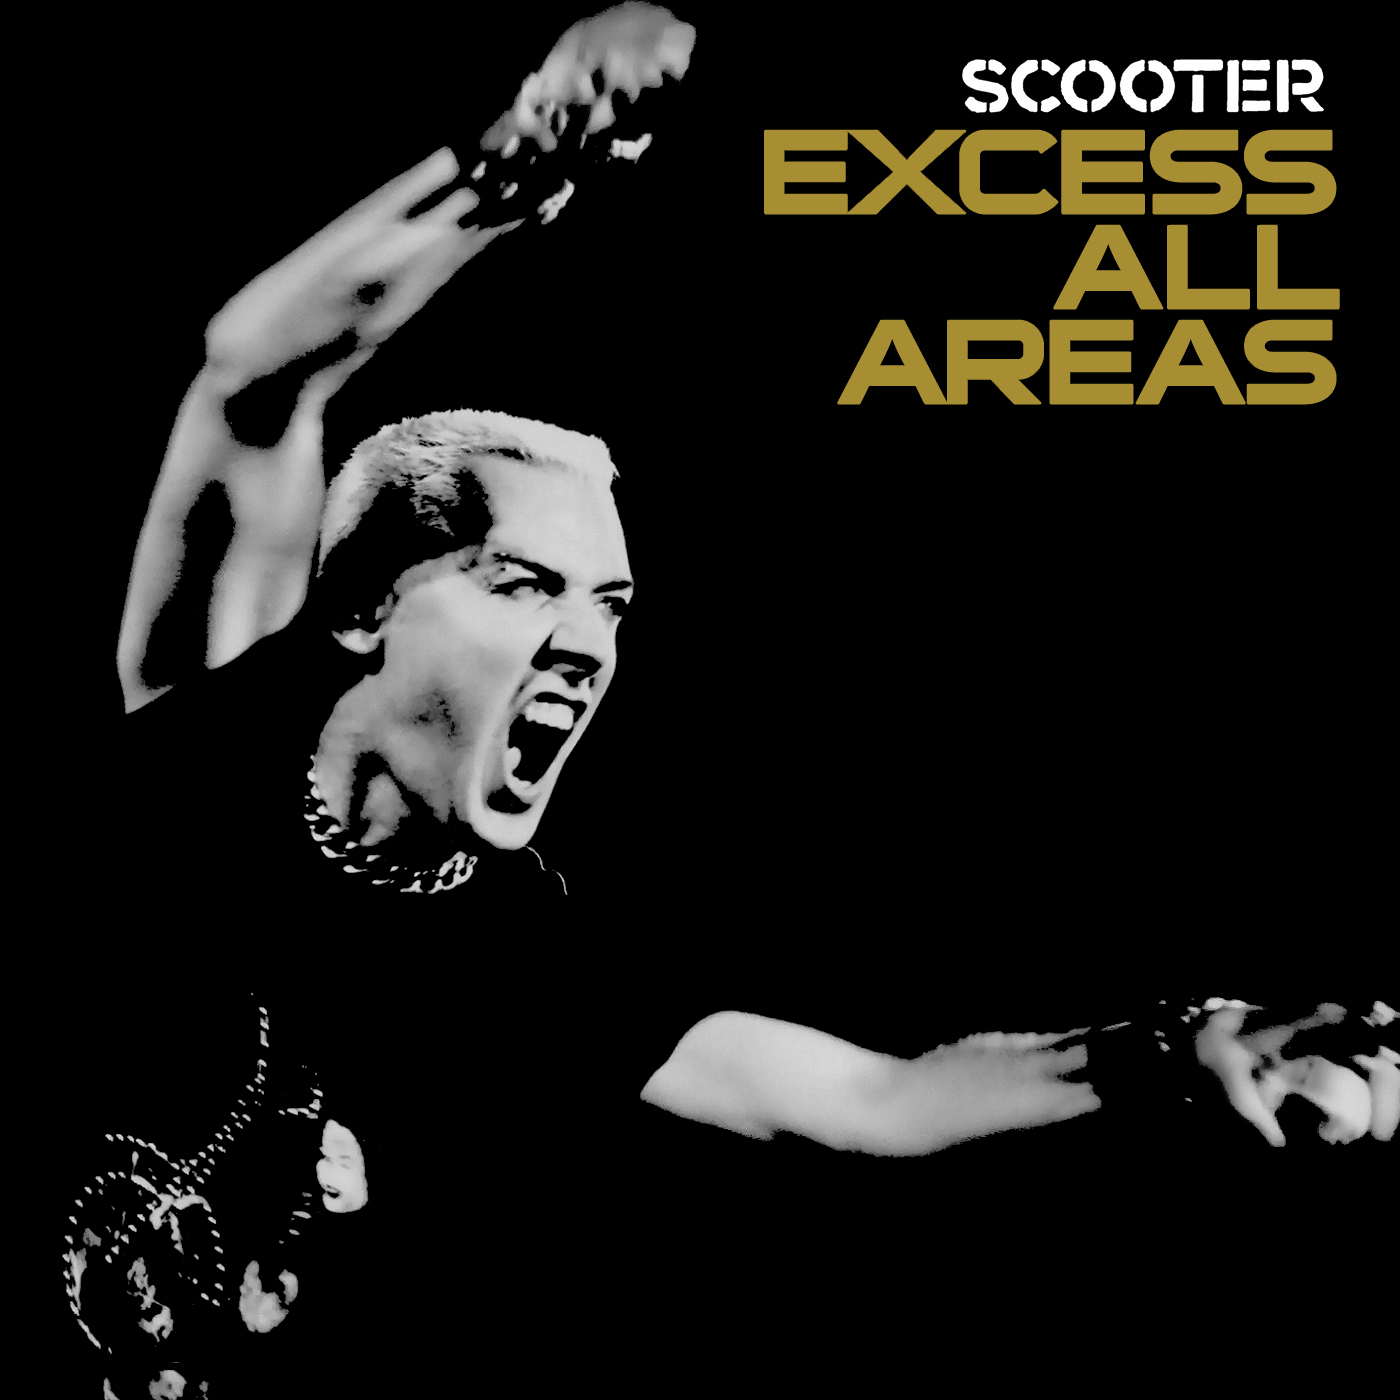 Album Artist: Scooter / Album Title: Excess All Areas